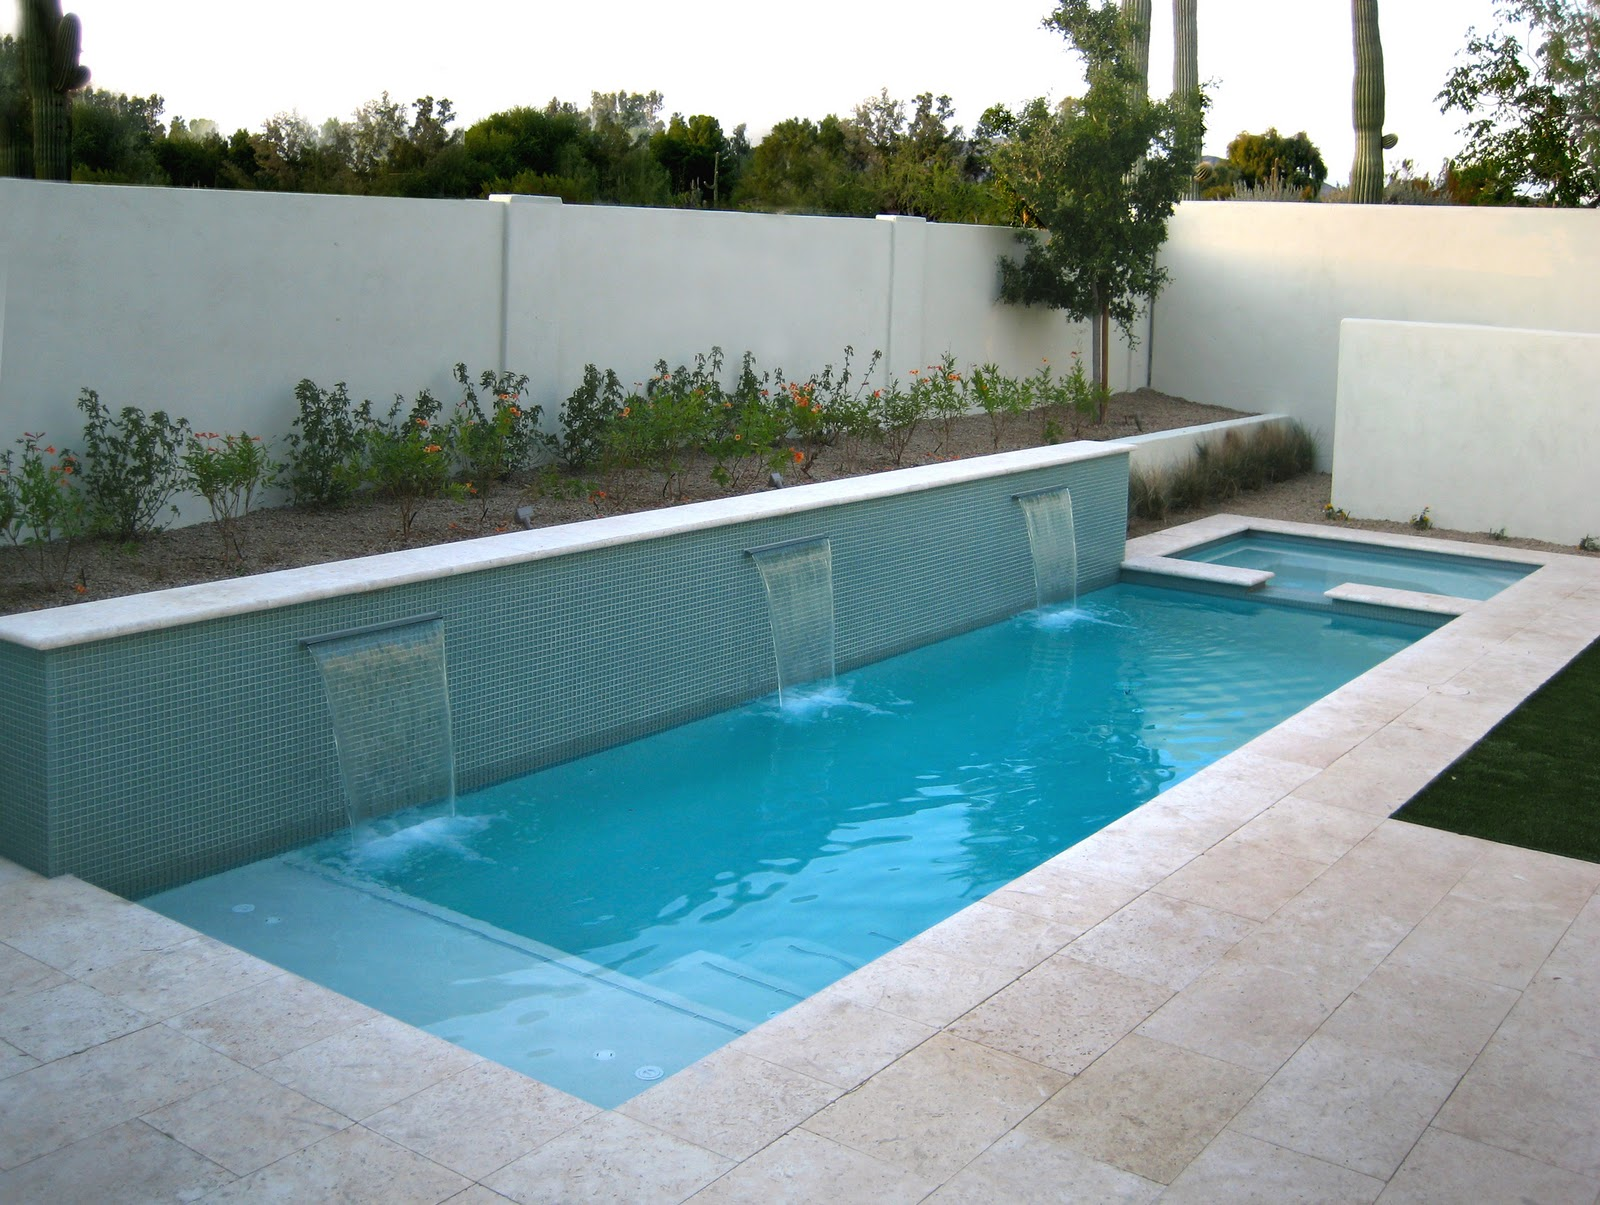 Swimming Pools for Small Yards | HomesFeed